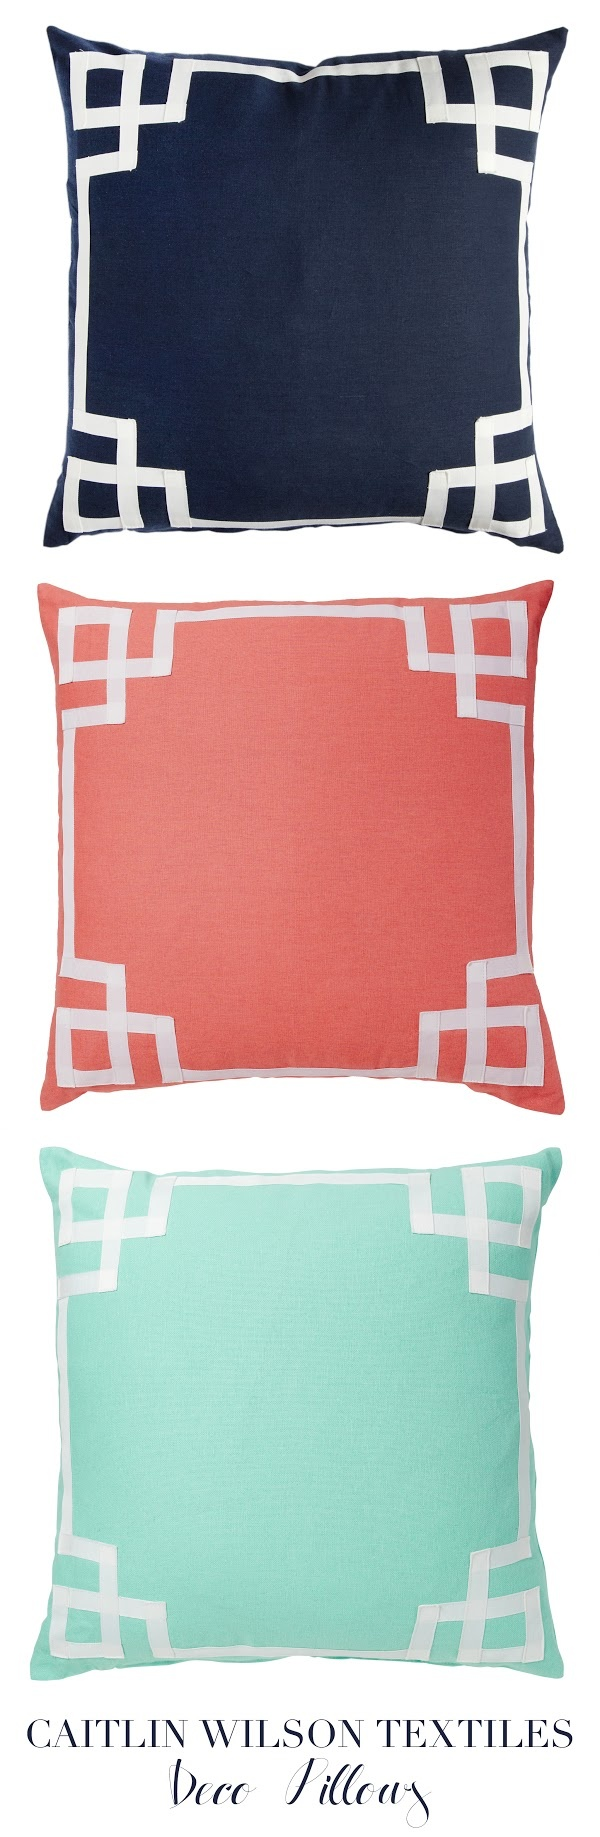 caitlin wilson design: style files: The Deco Pillows are Back in Town!